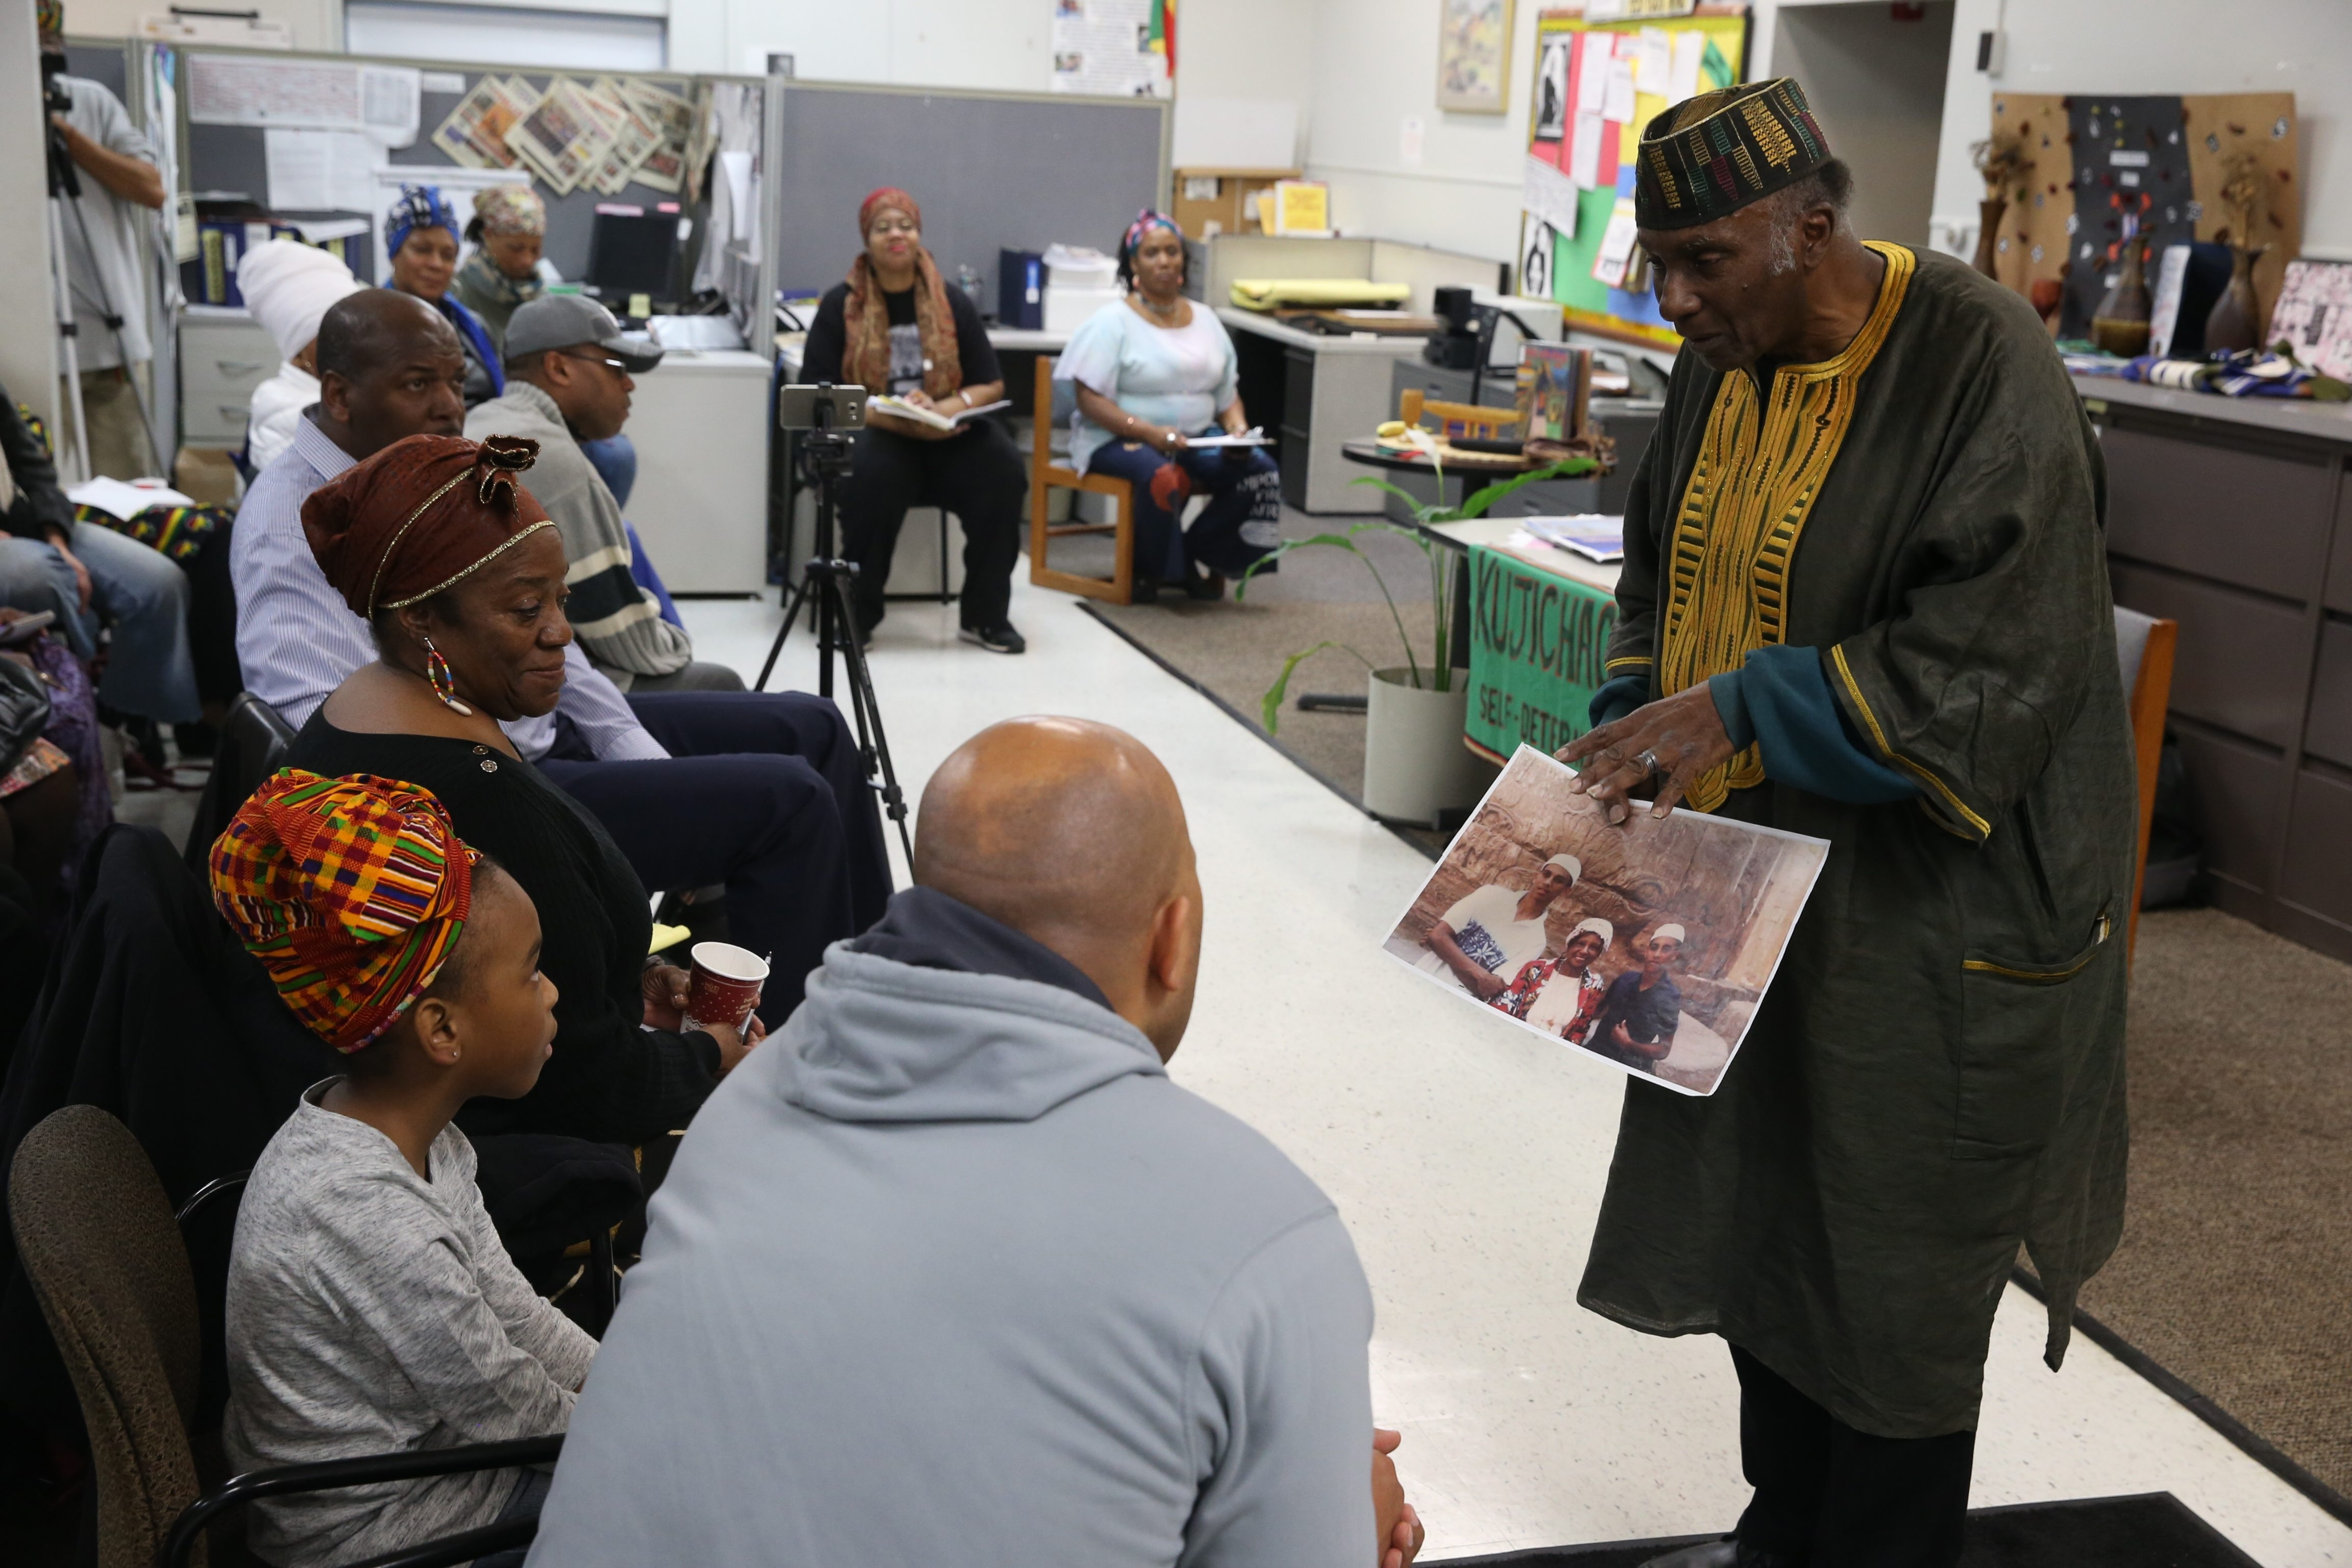 Leonard Jeffries Jr., chairman of the black studies department at City College of New York, delivers the keynote address Sunday at the Kwanzaa celebration at CAO Rafi Greene Resource Center.